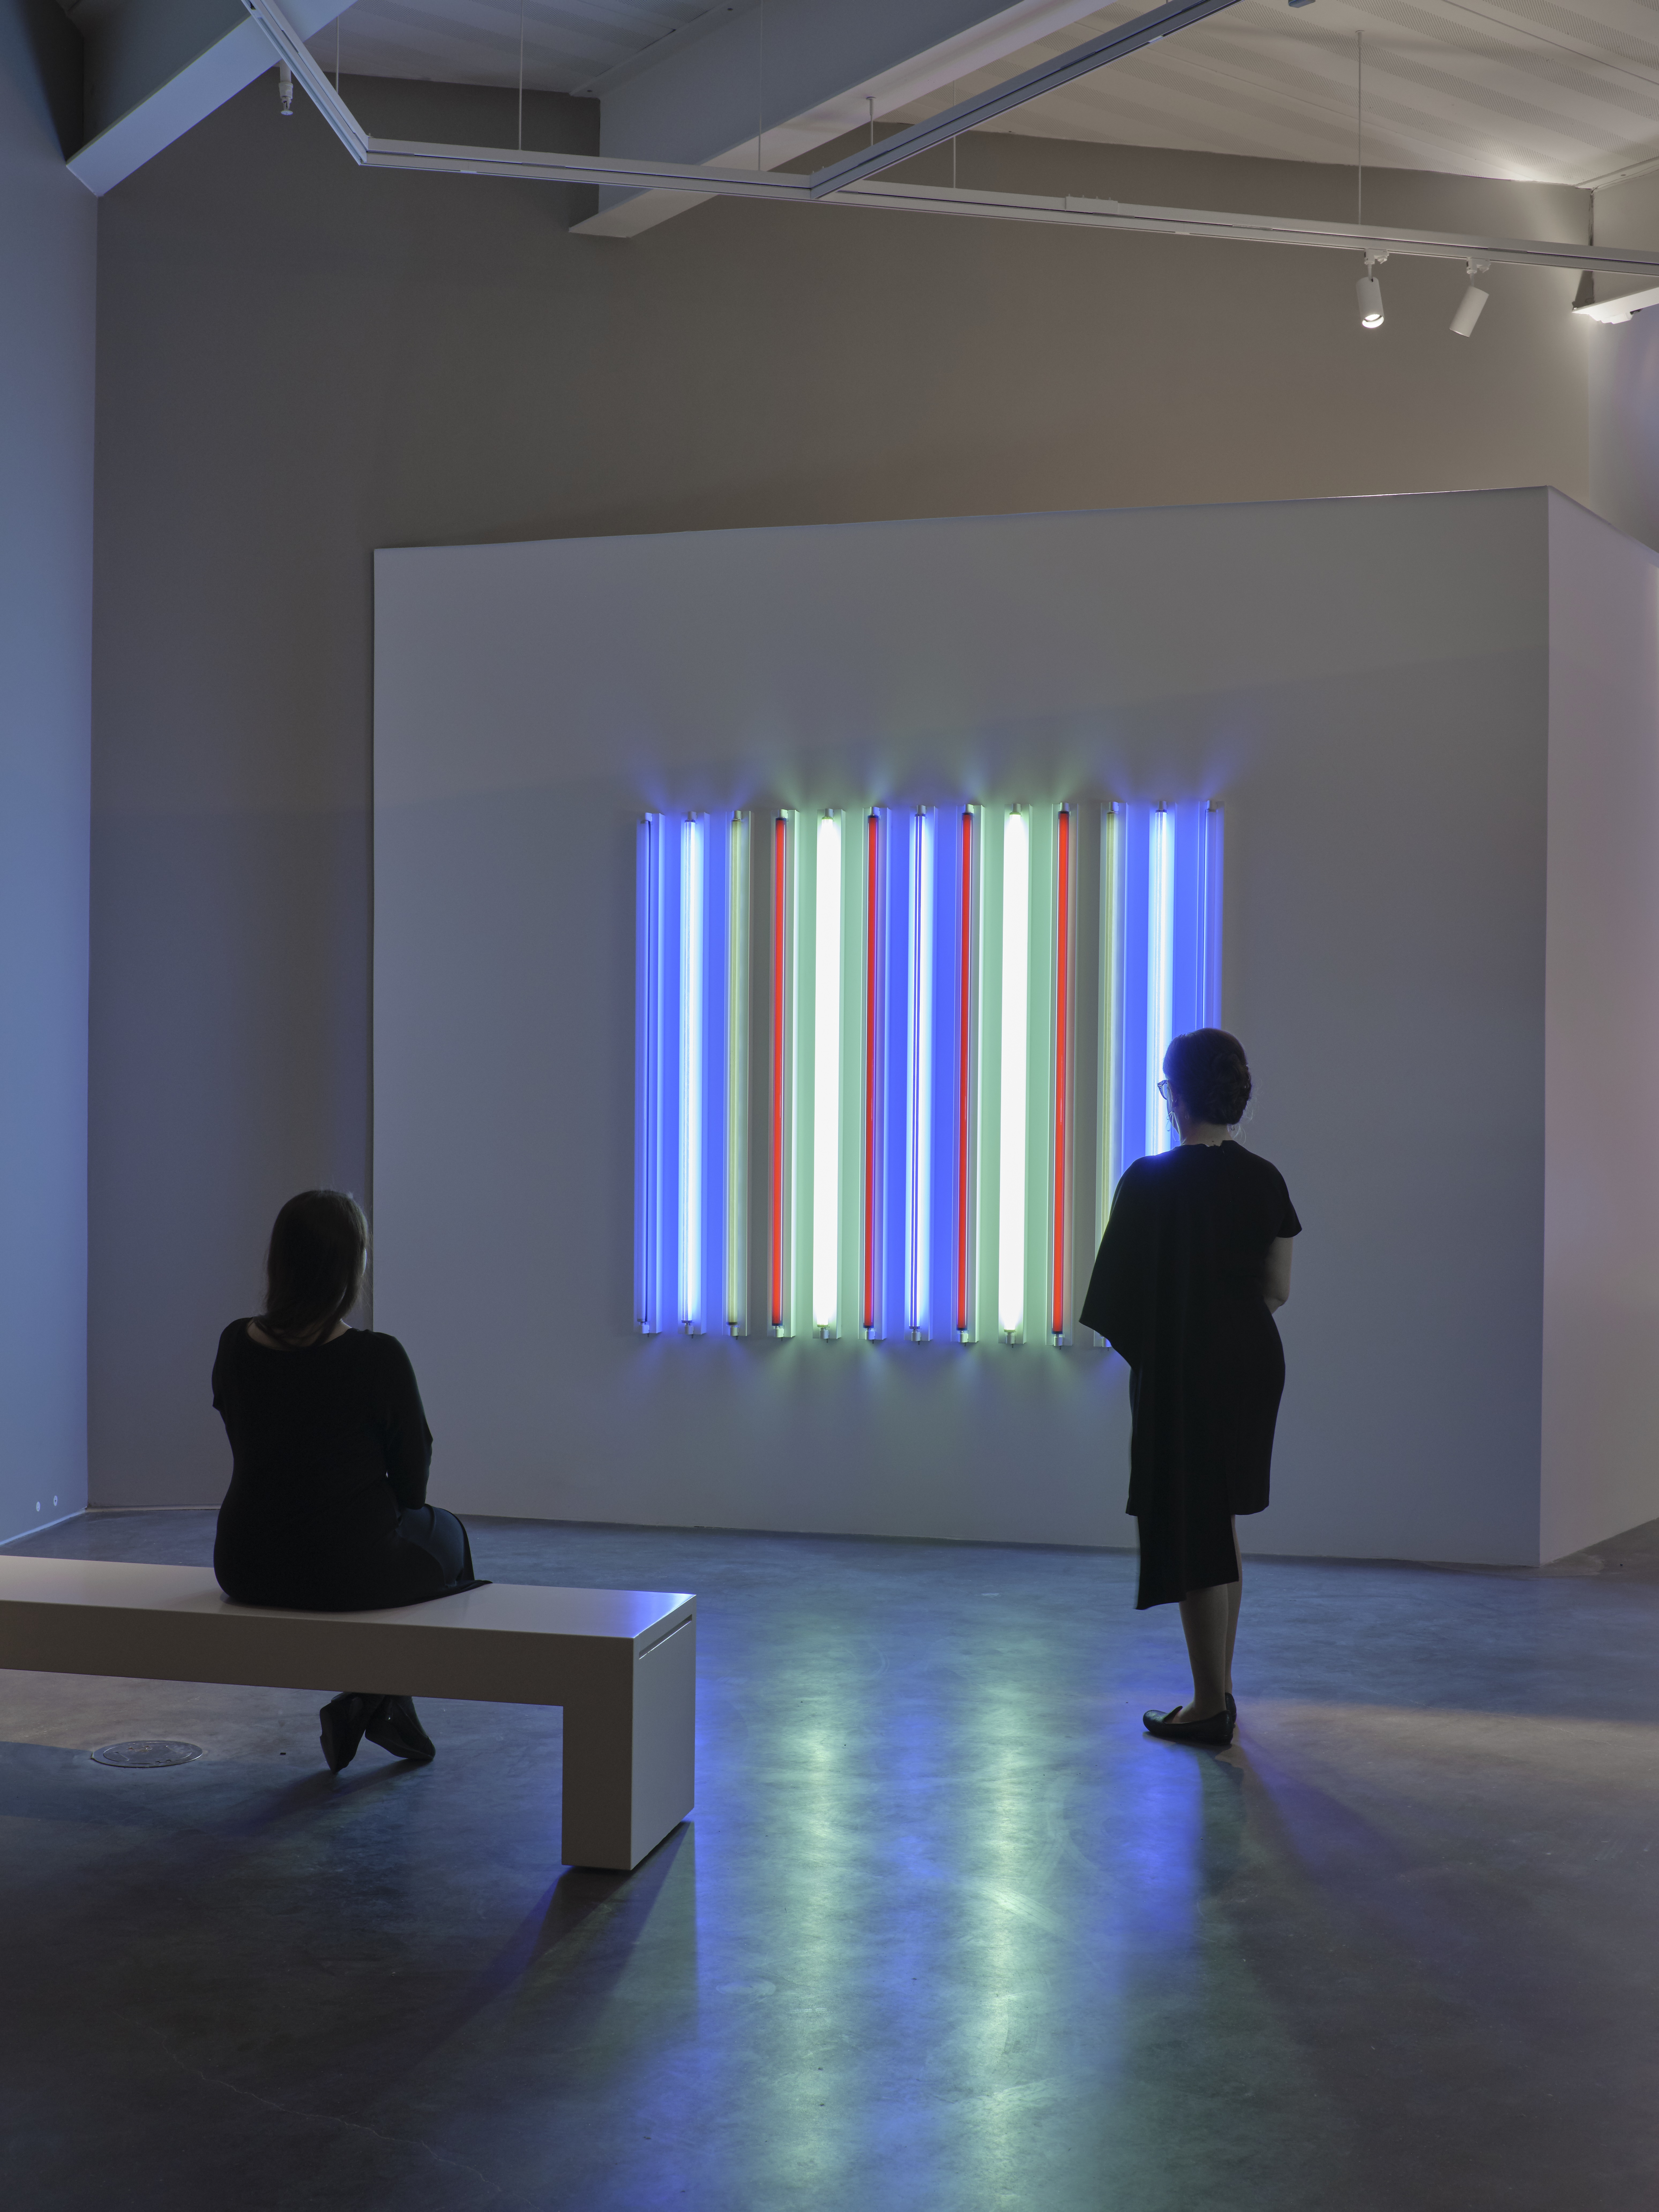 Two figures stand in front of a light sculpture consisting of vertical tubes of light